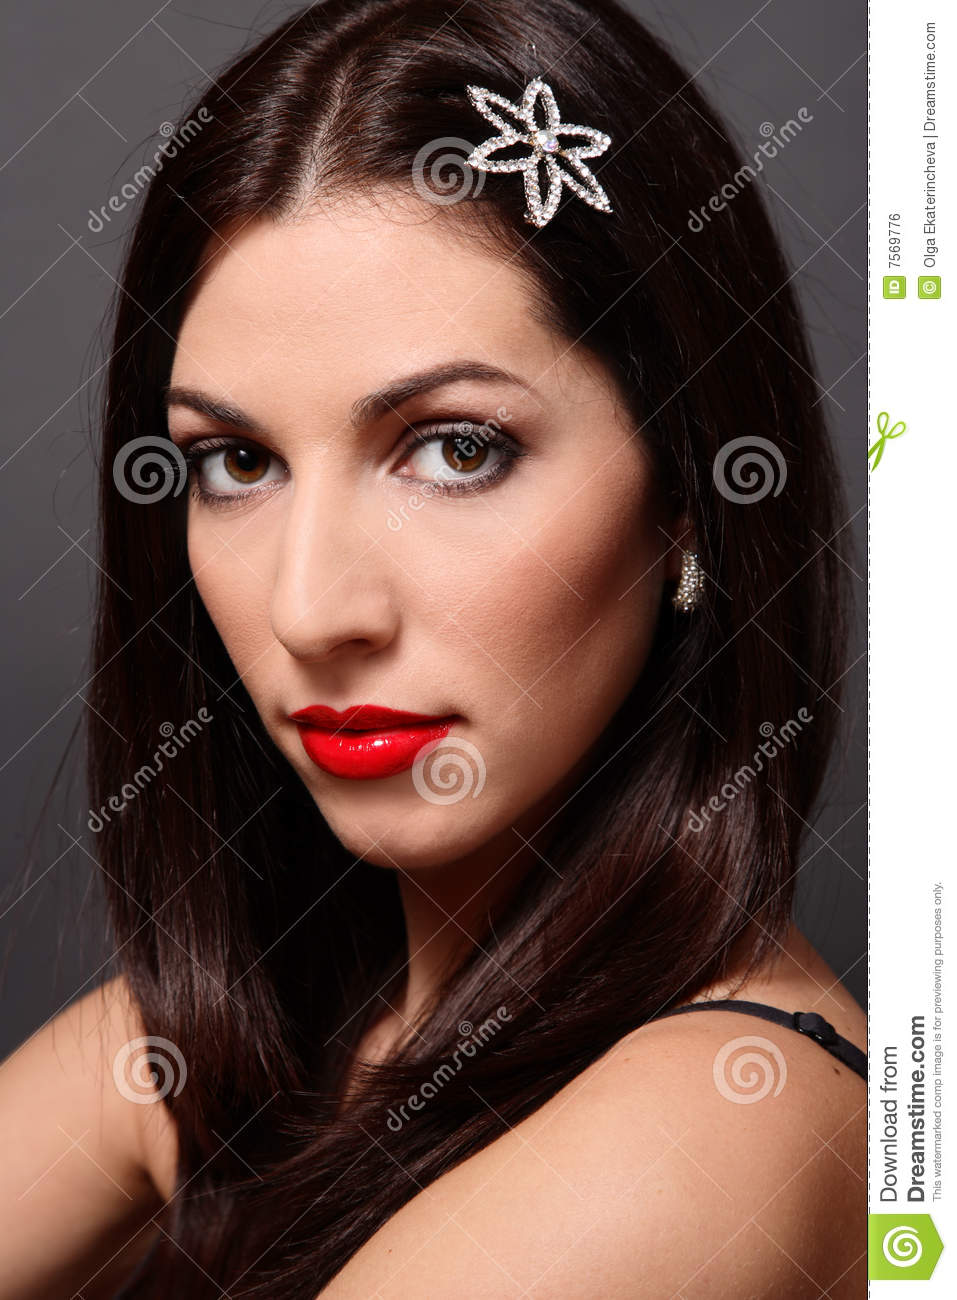 Italian Beauty Royalty Free Stock Image